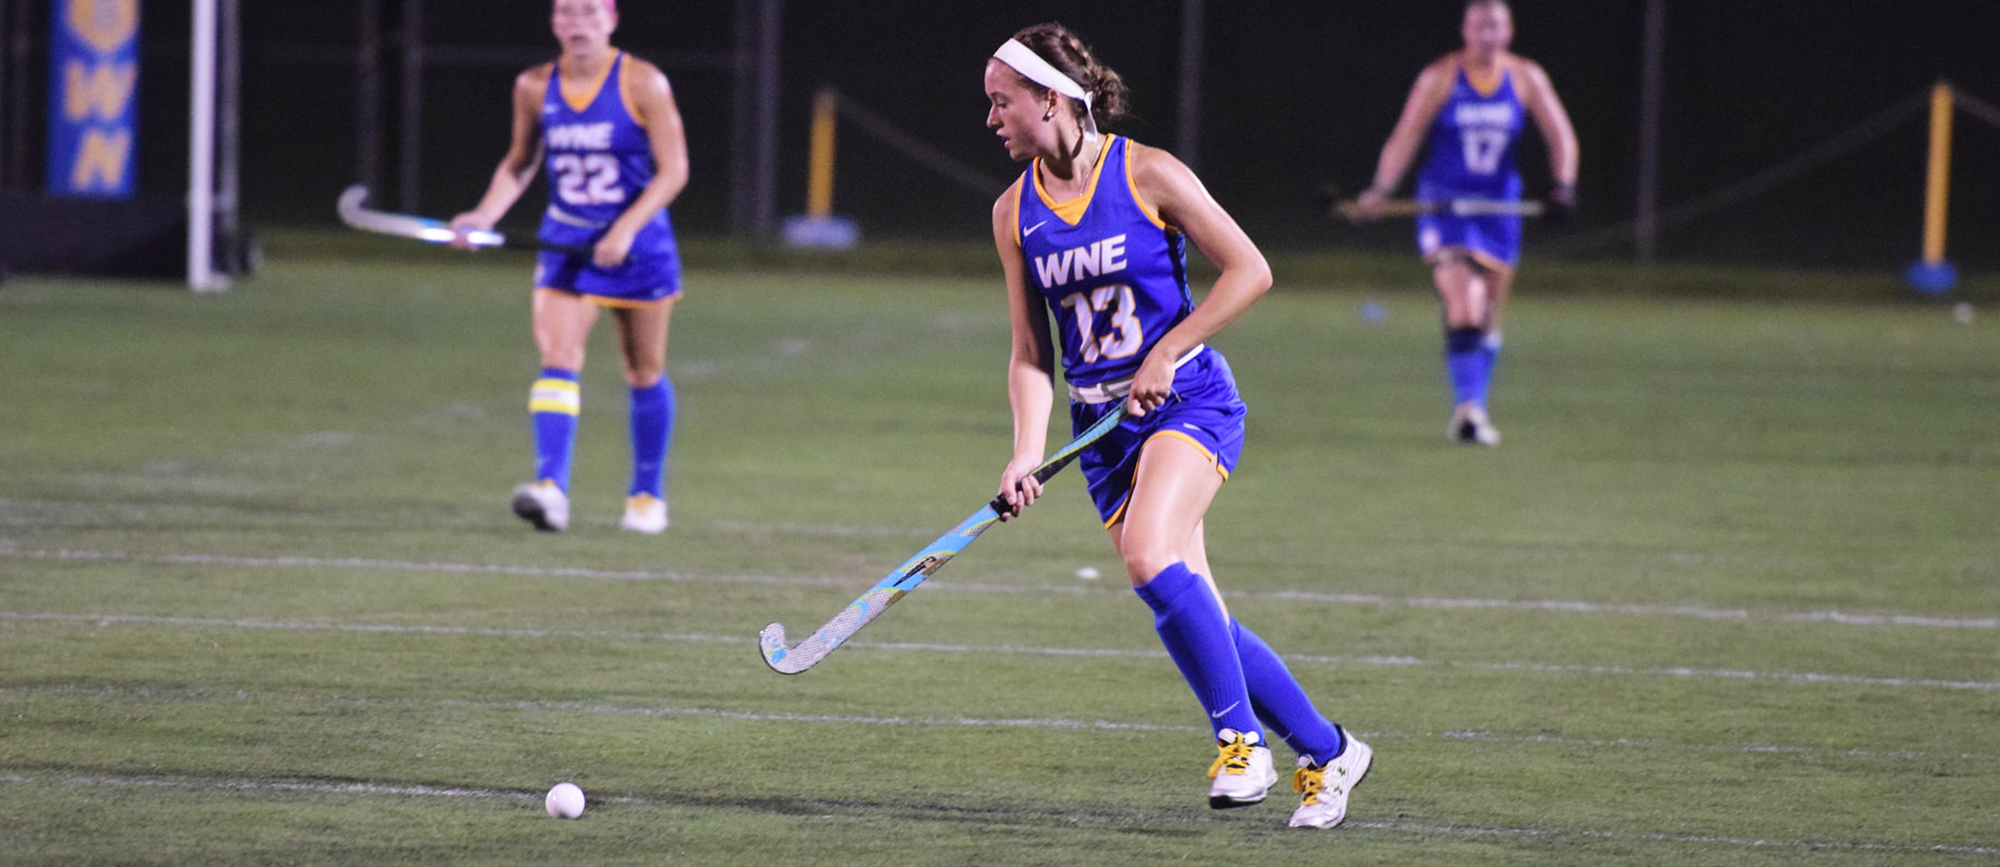 Jackie Clark scored the game-winning goal in the final minute of Western New England's 3-2 victory over Roger Williams on Friday. (Photo by Rachael Margossian)